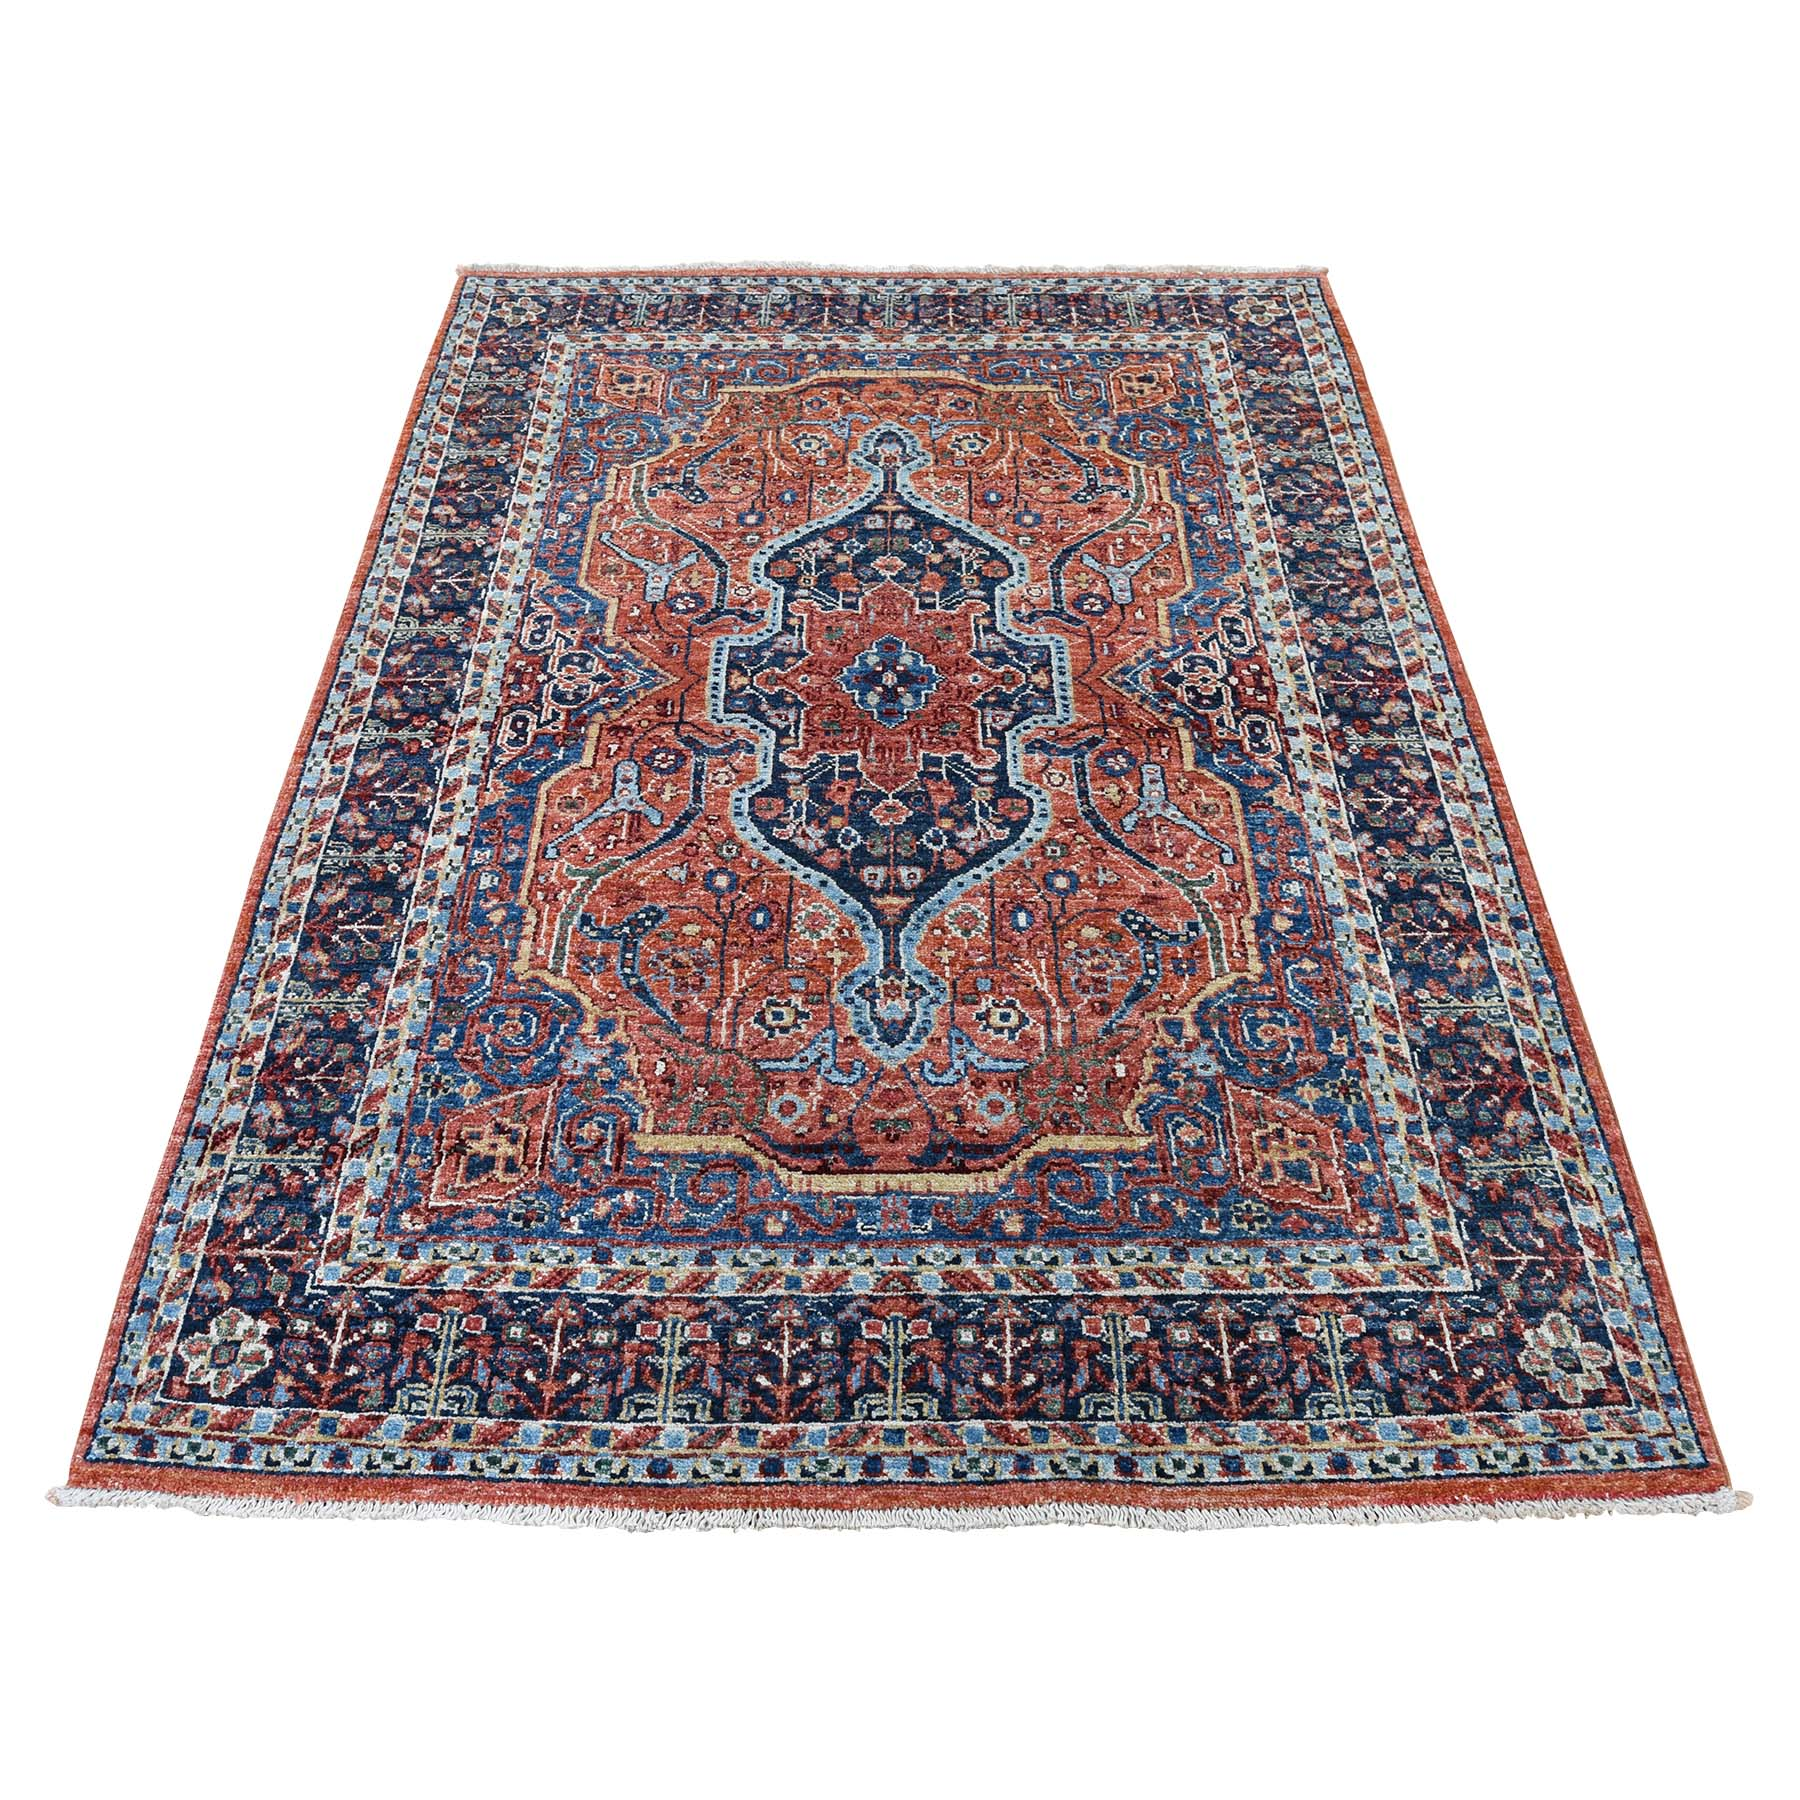 "4'1""x5'10"" Peshawar Antiqued Sarouk Fereghan Hand-Knotted Pure Wool Oriental Rug"